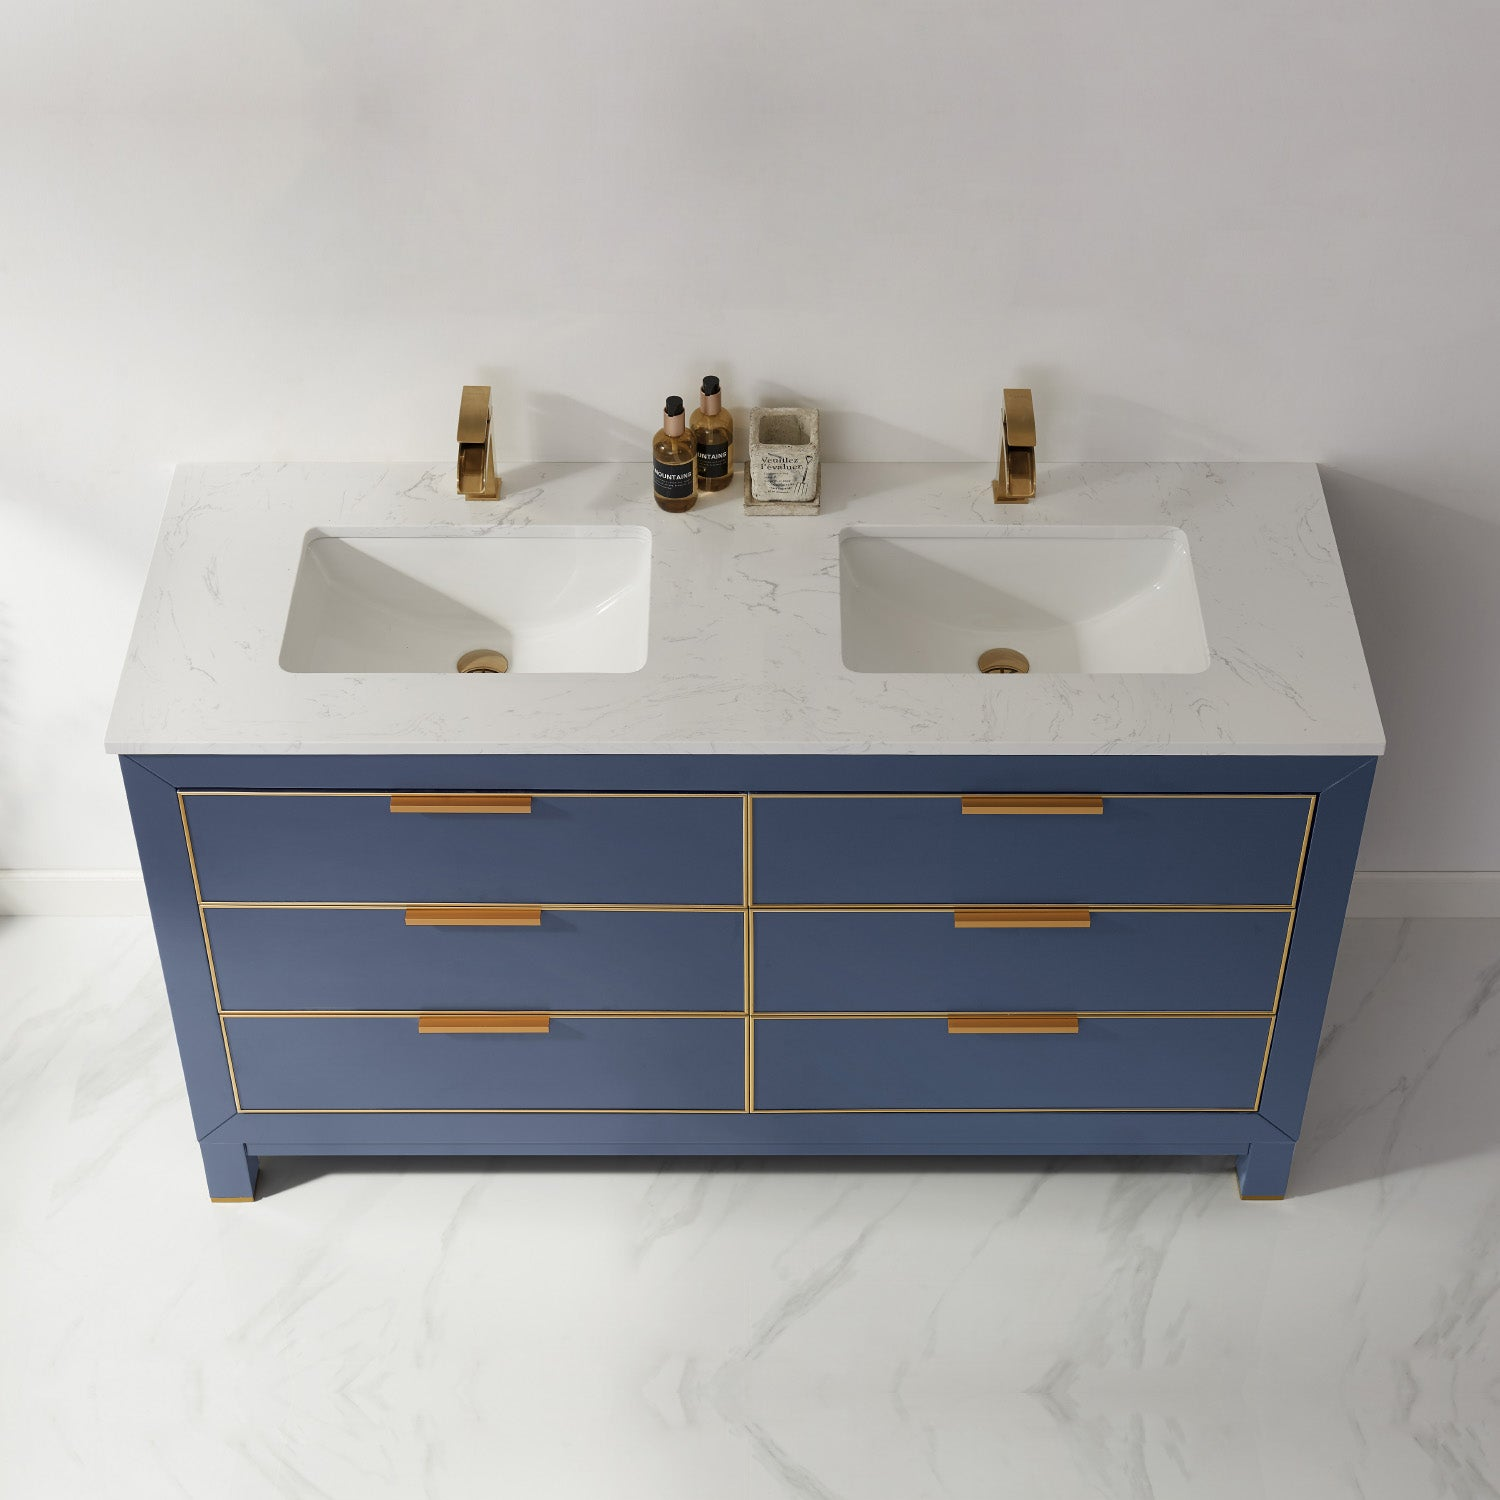 "Jackson 60"" Double Bathroom Vanity Set in Royal Blue and Composite Carrara White Stone Countertop without Mirror"